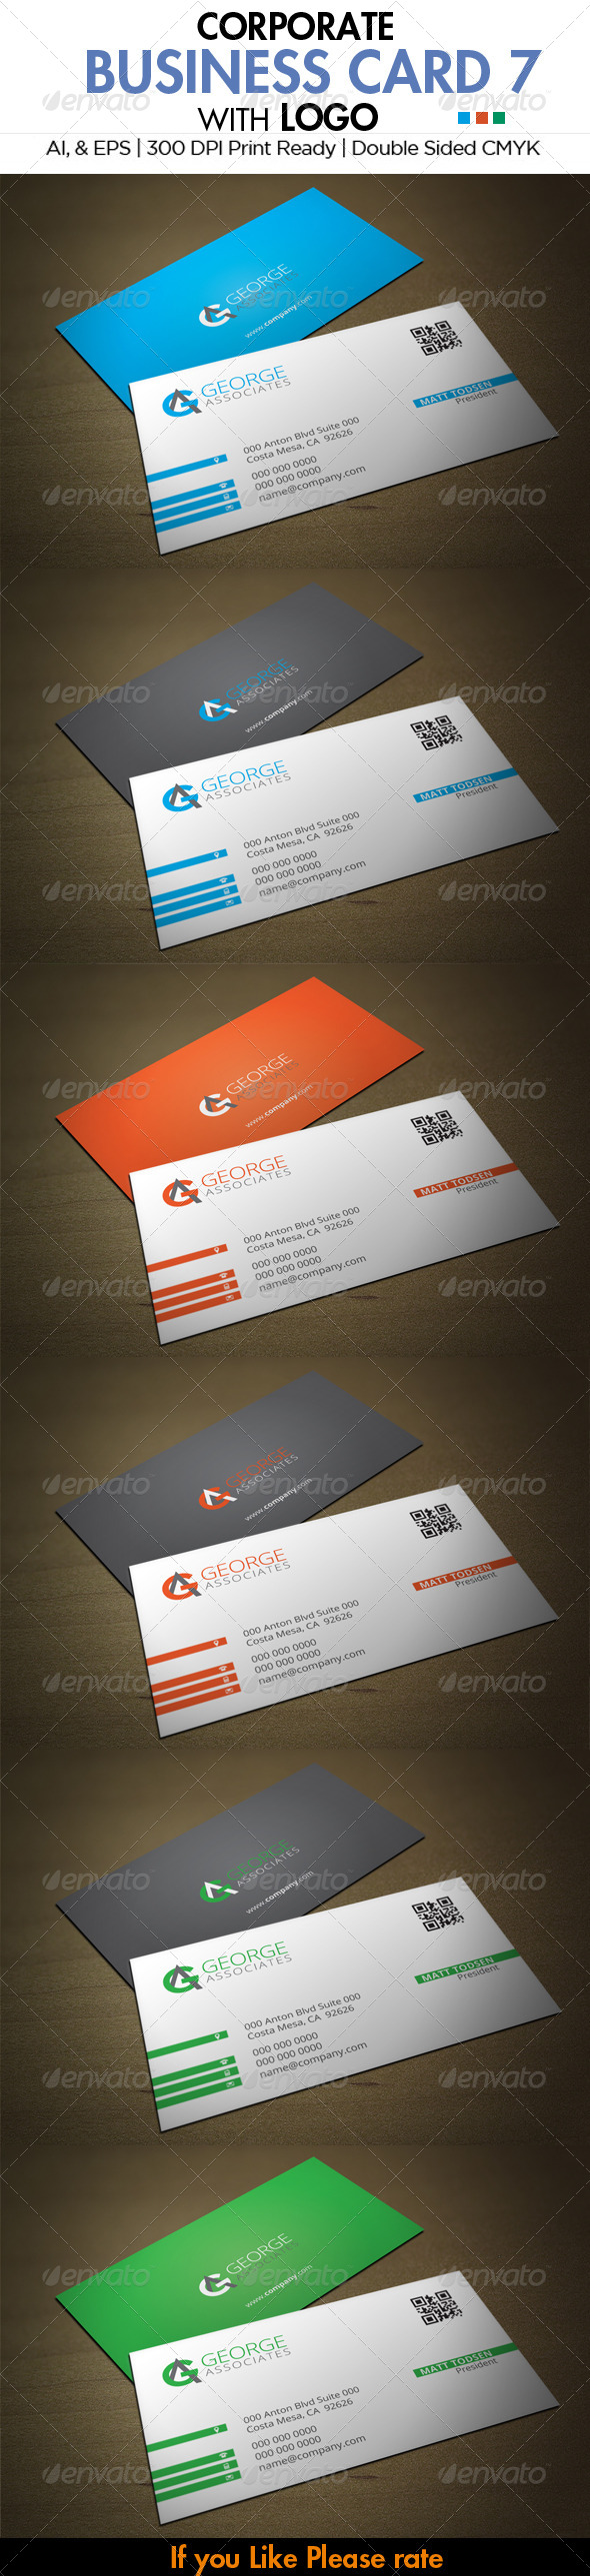 Corporate Business Card 7